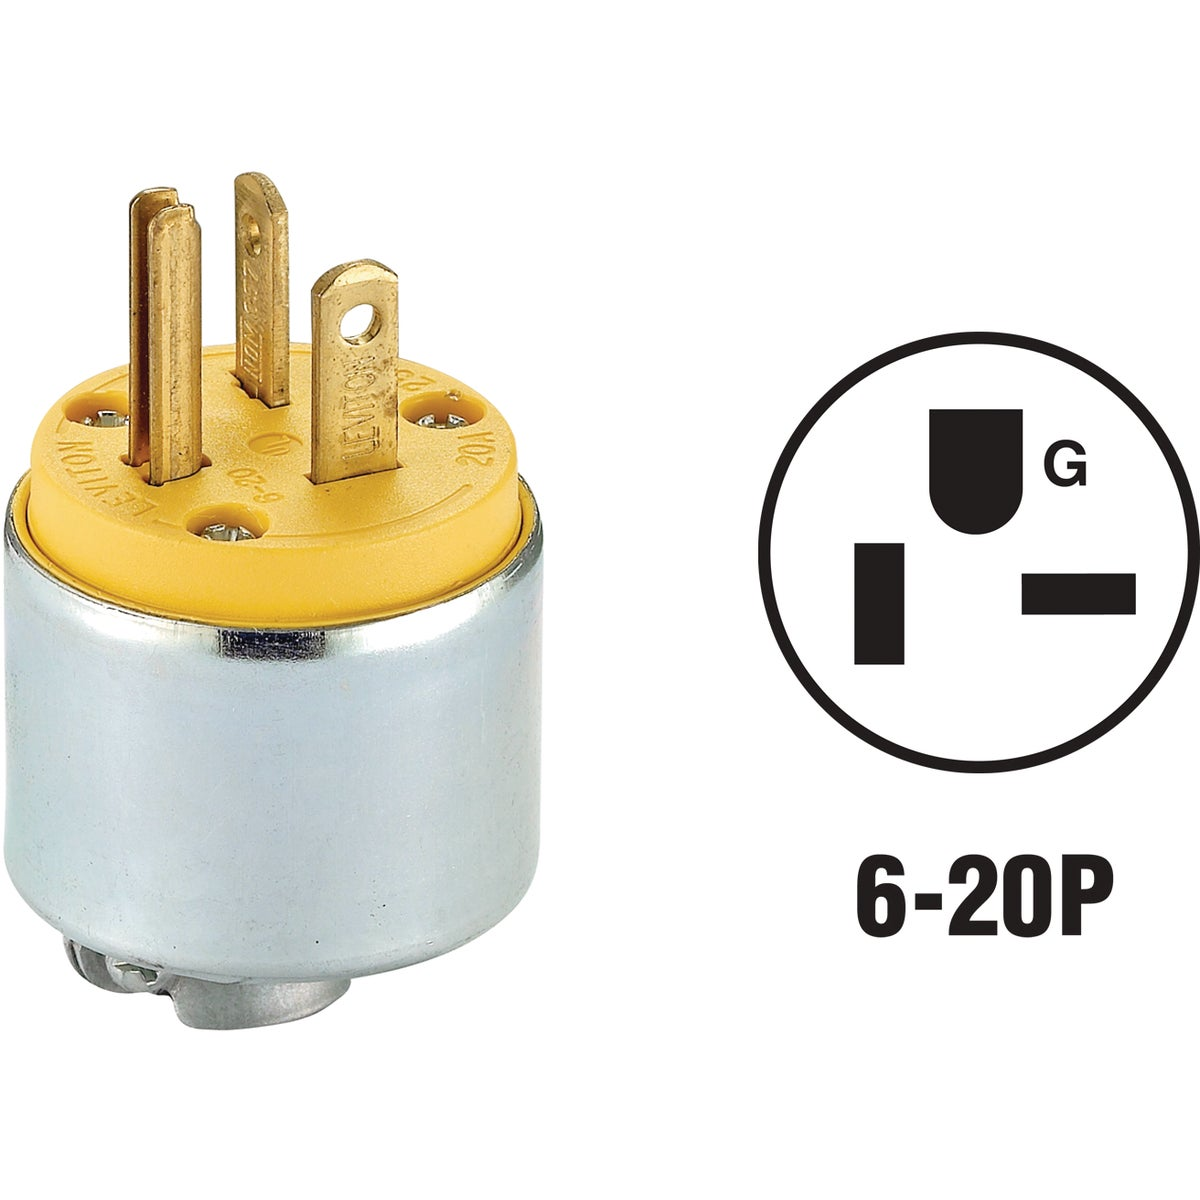 YEL ARMORED PLUG - 620PA by Leviton Mfg Co